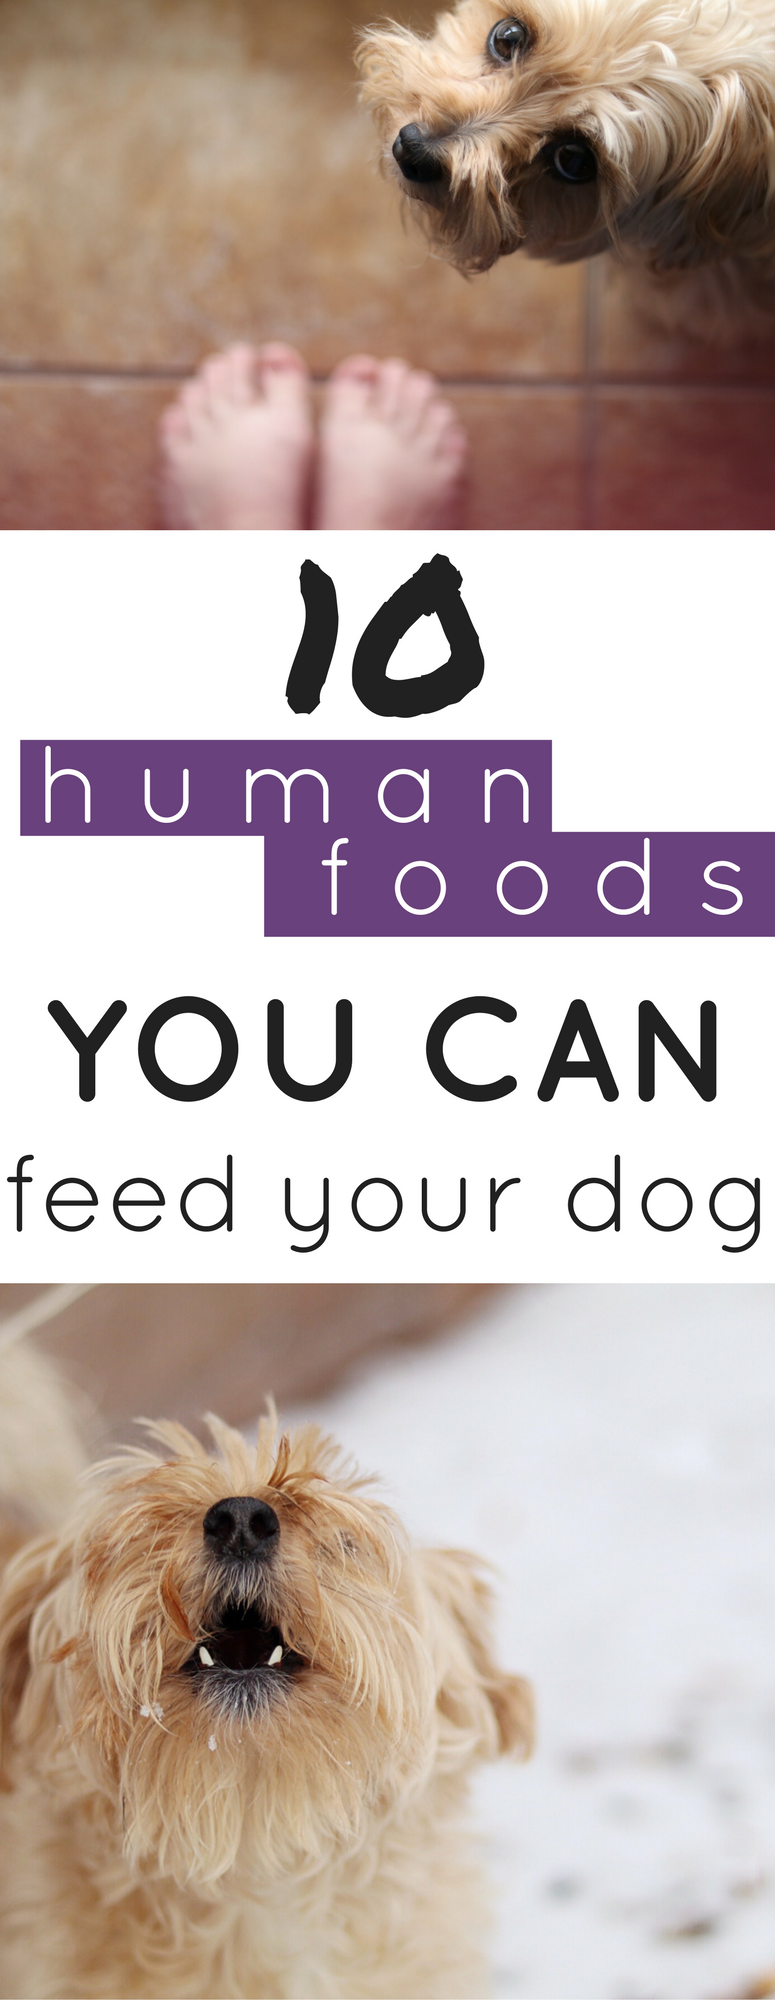 Can My Dog Eat That 10 Healthy Foods For Your Dog Best Puppy Food Puppy Food Best Puppies